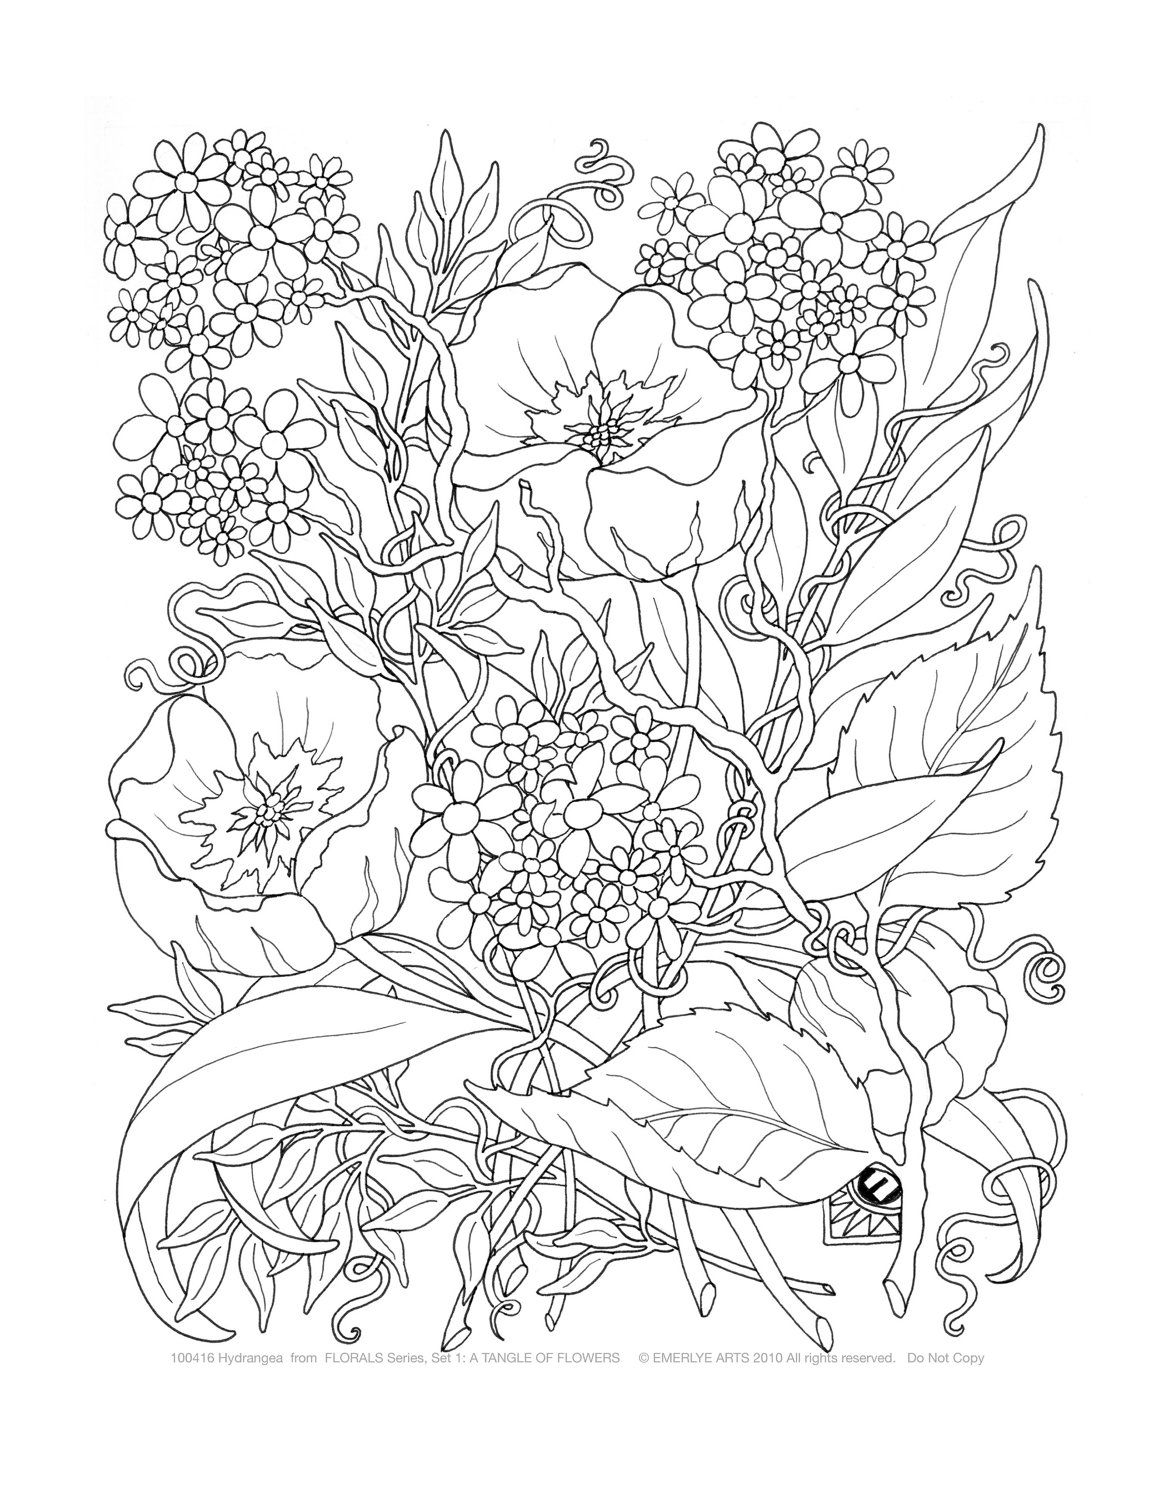 adult coloring Adult Coloring Pages A Tangle of Flowers Set of 8